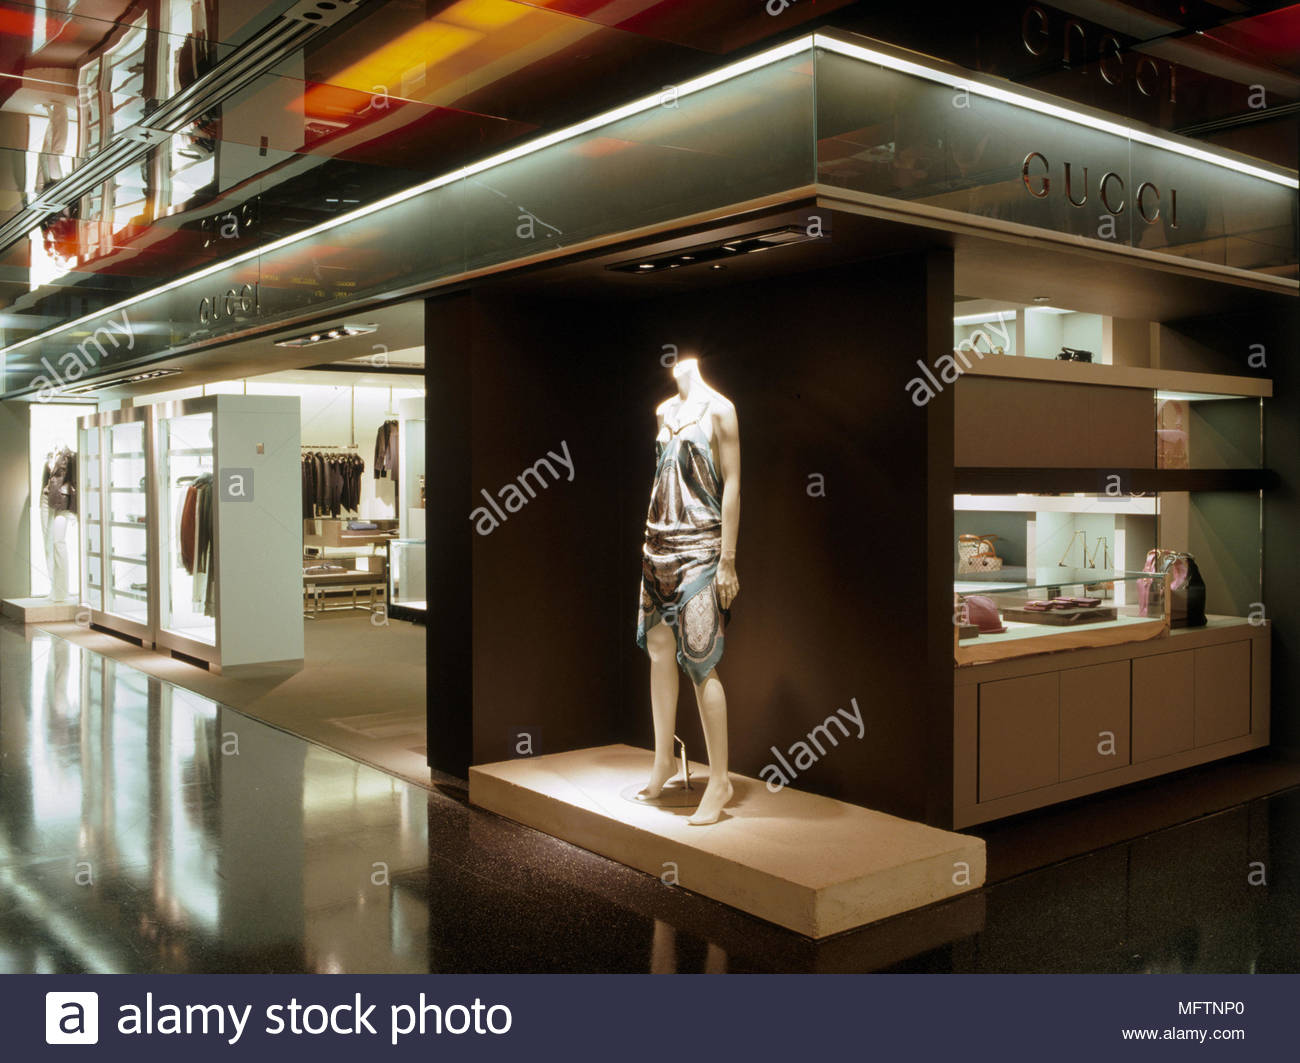 495f417c846 Interior of Gucci shop within shopping complex Interiors designer shops  shopping retailing display clothing mannequins